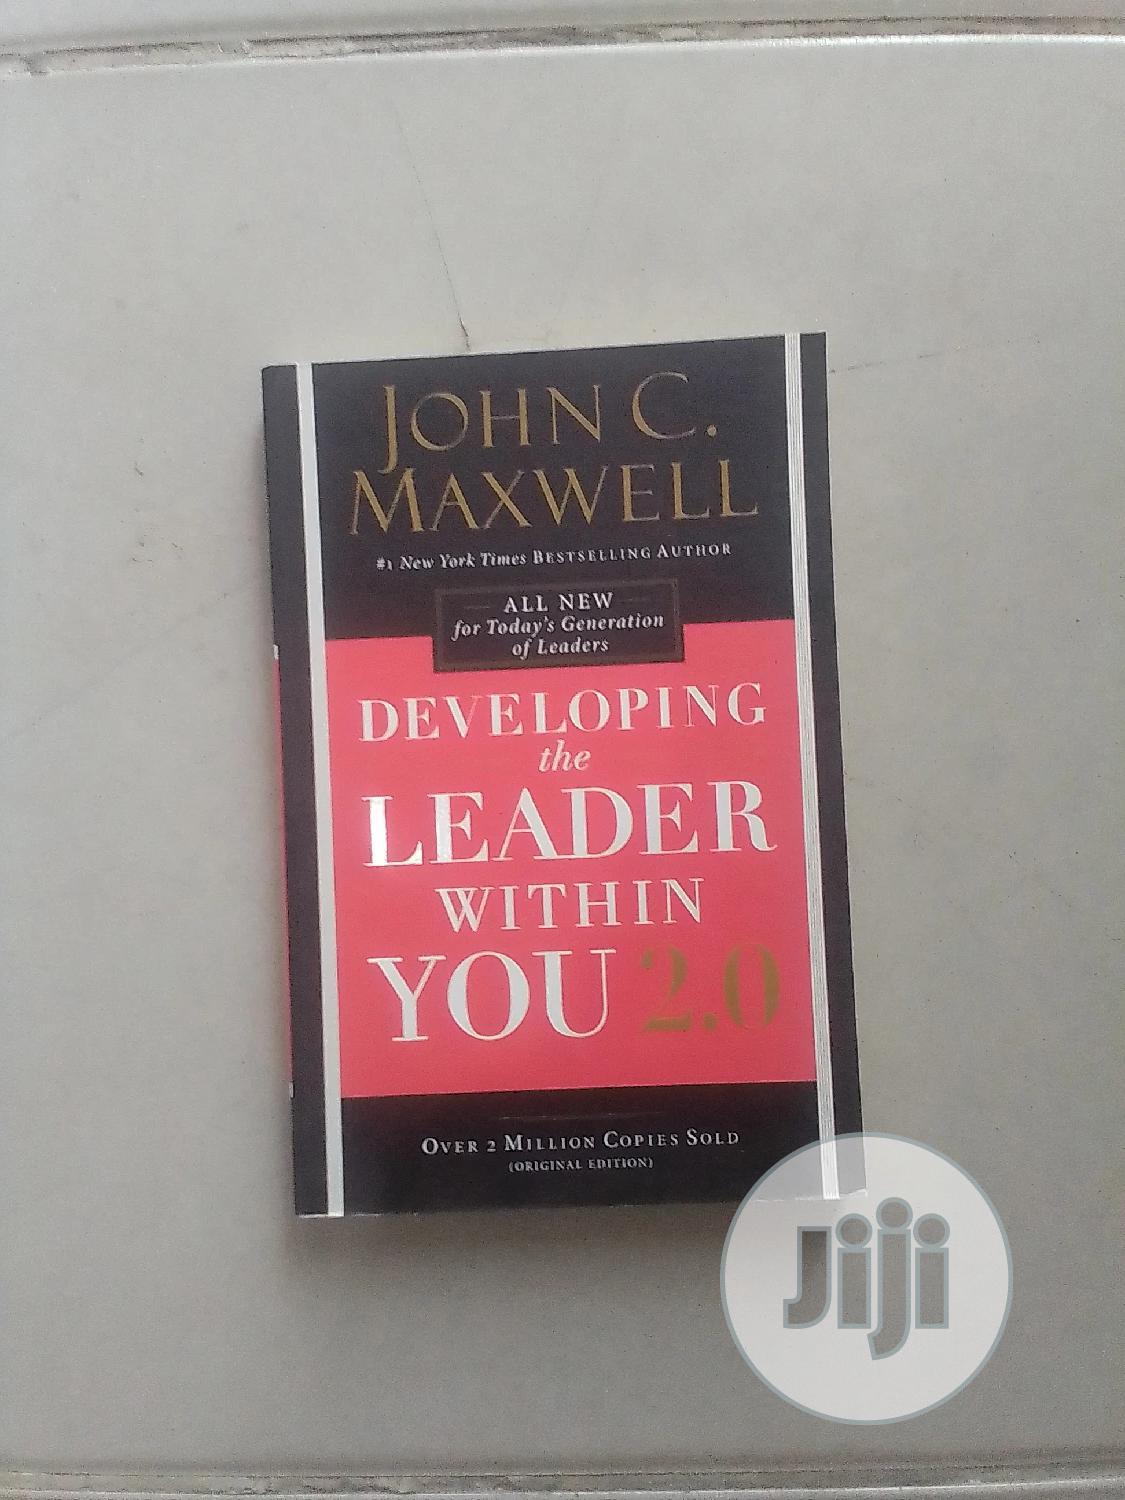 Developing the Leader Within You 2.0 by John C Maxwell